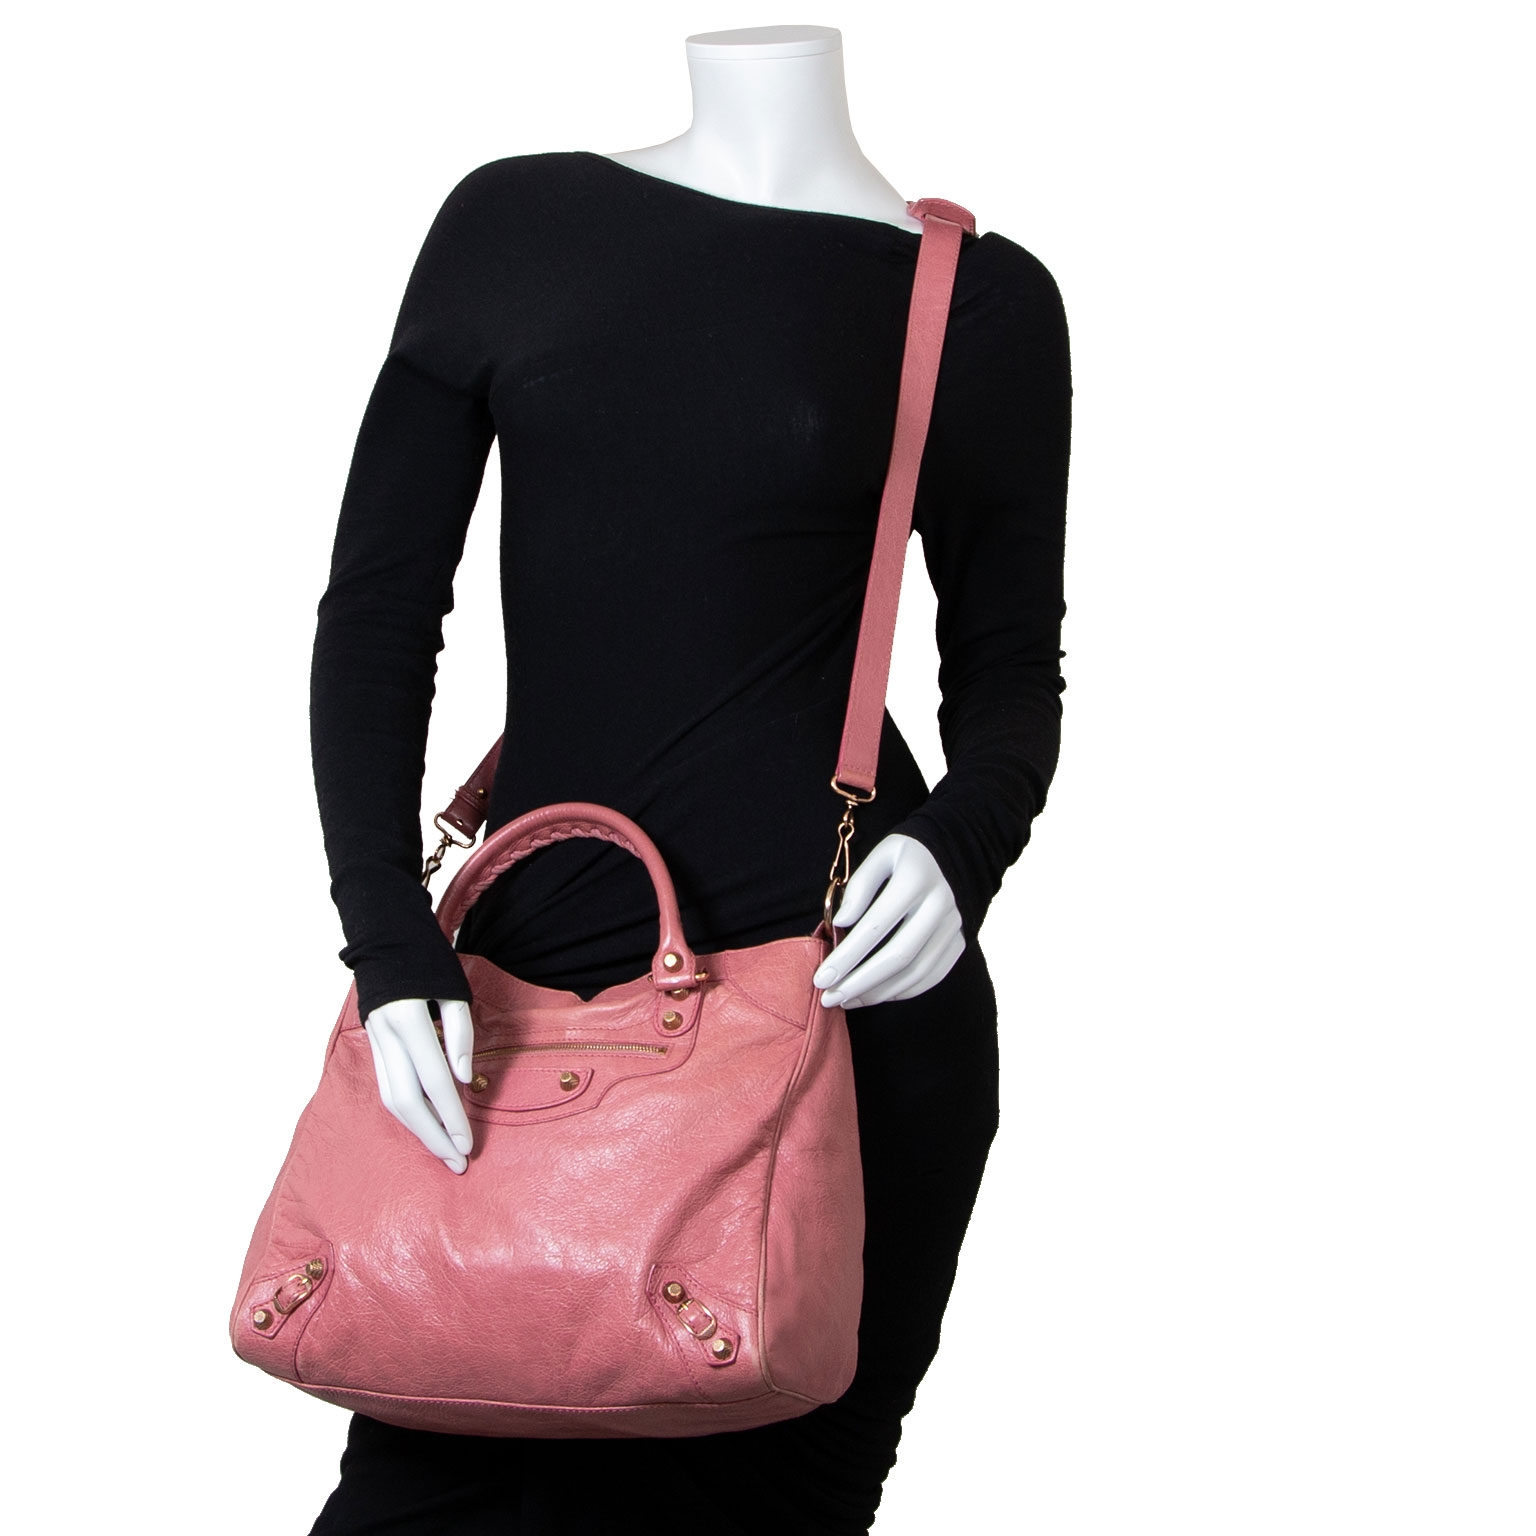 Are you looking for an authentic Balenciaga Rose Velo Bag? Buy safe and secur at Labellov